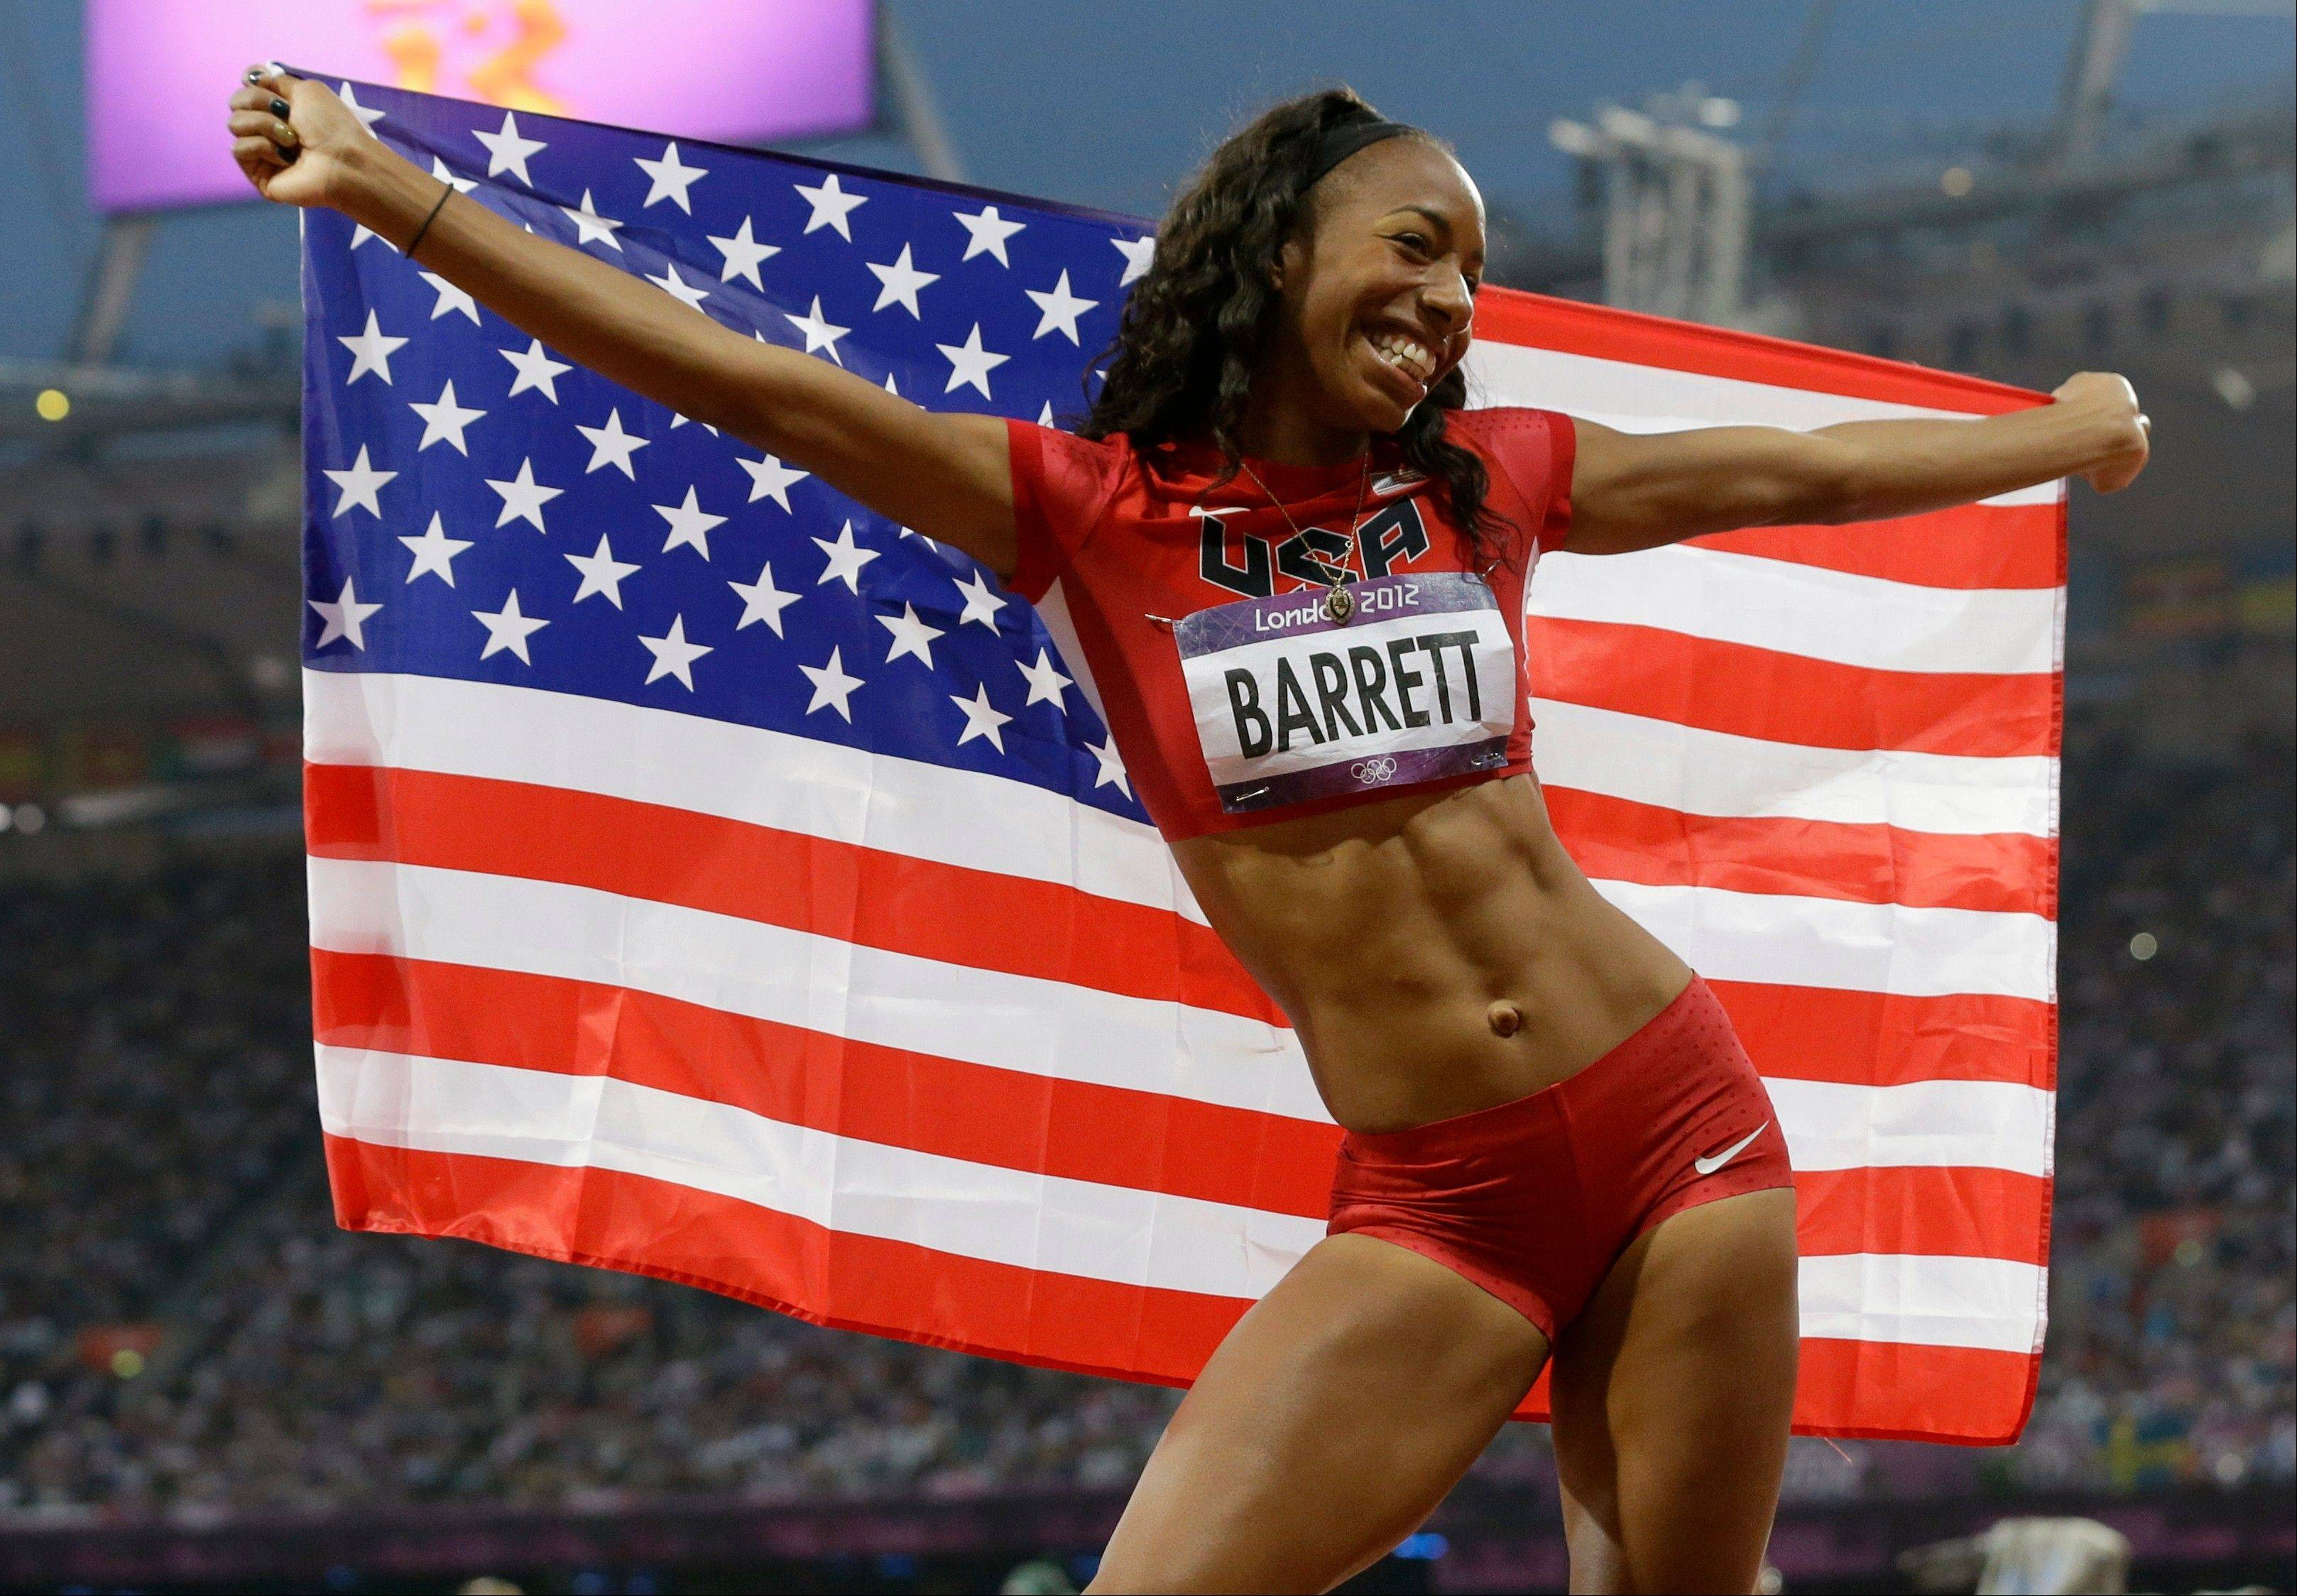 United States' Brigetta Barrett poses with her national flag after her second place win in the women's high jump during the athletics in the Olympic Stadium at the 2012 Summer Olympics, London, Saturday, Aug. 11, 2012.